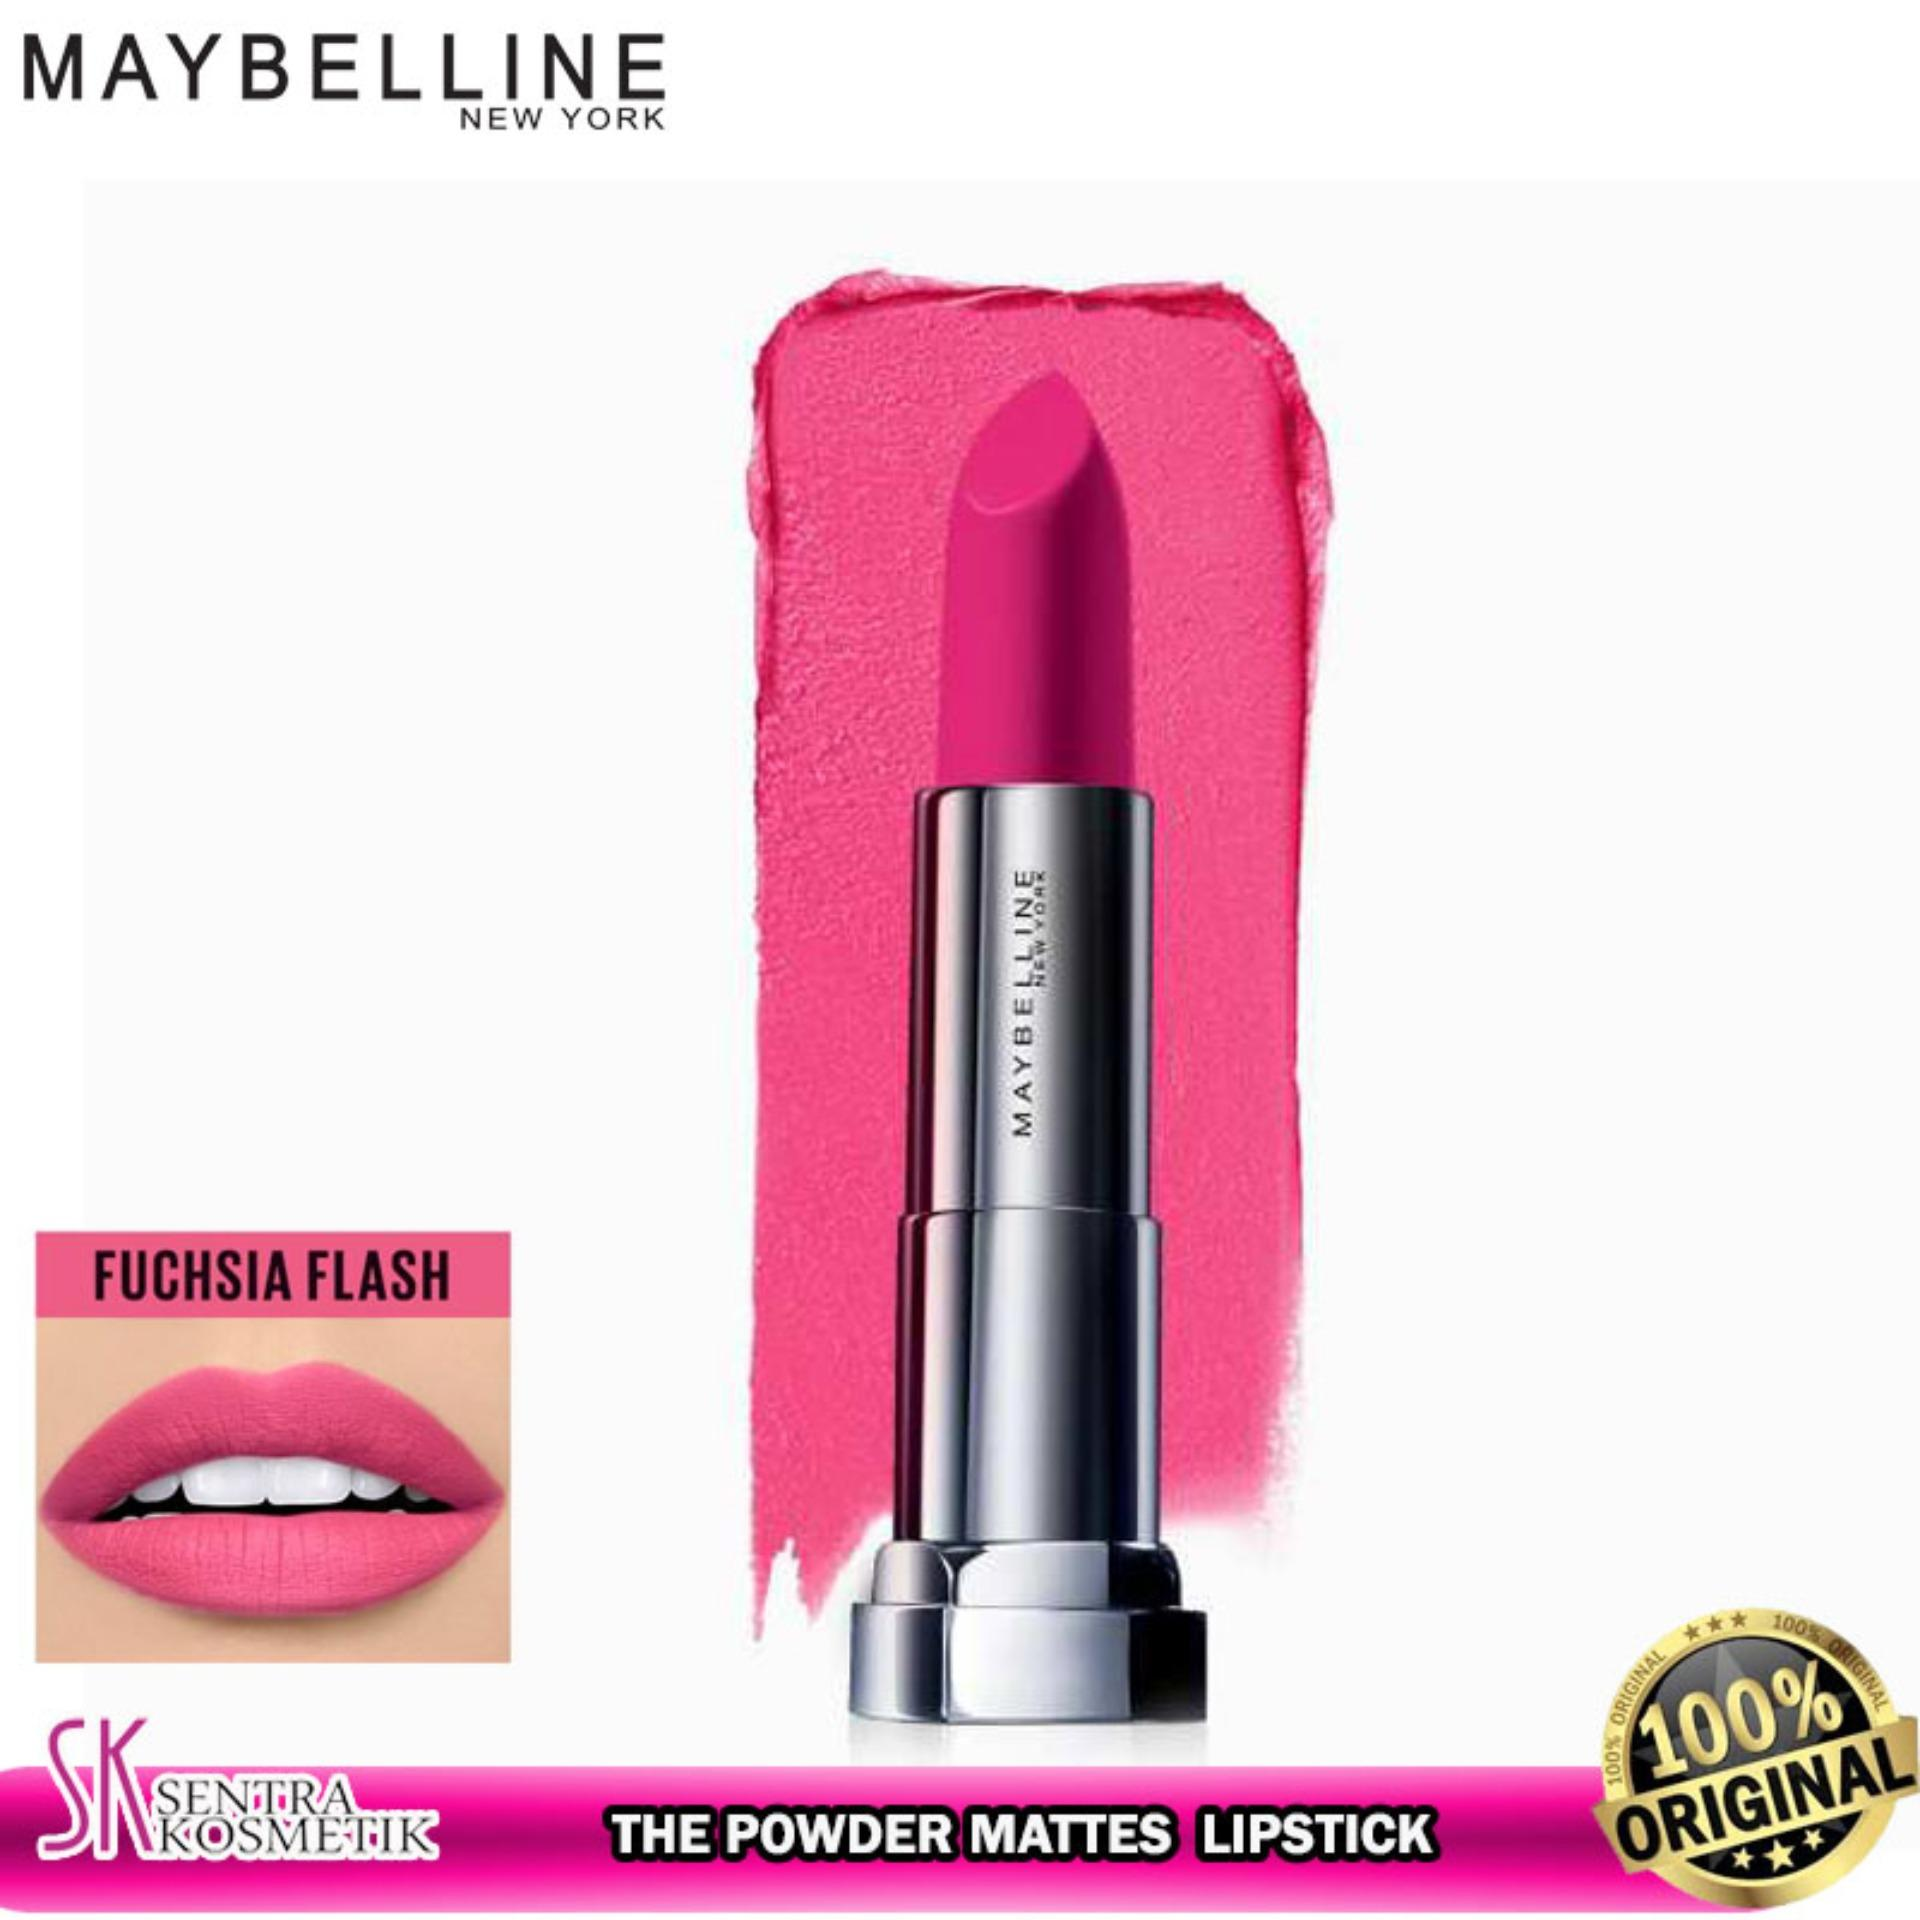 MAYBELLINE Color Sensational The Powder Mattes Lipstick - FUCHSIA FLASH